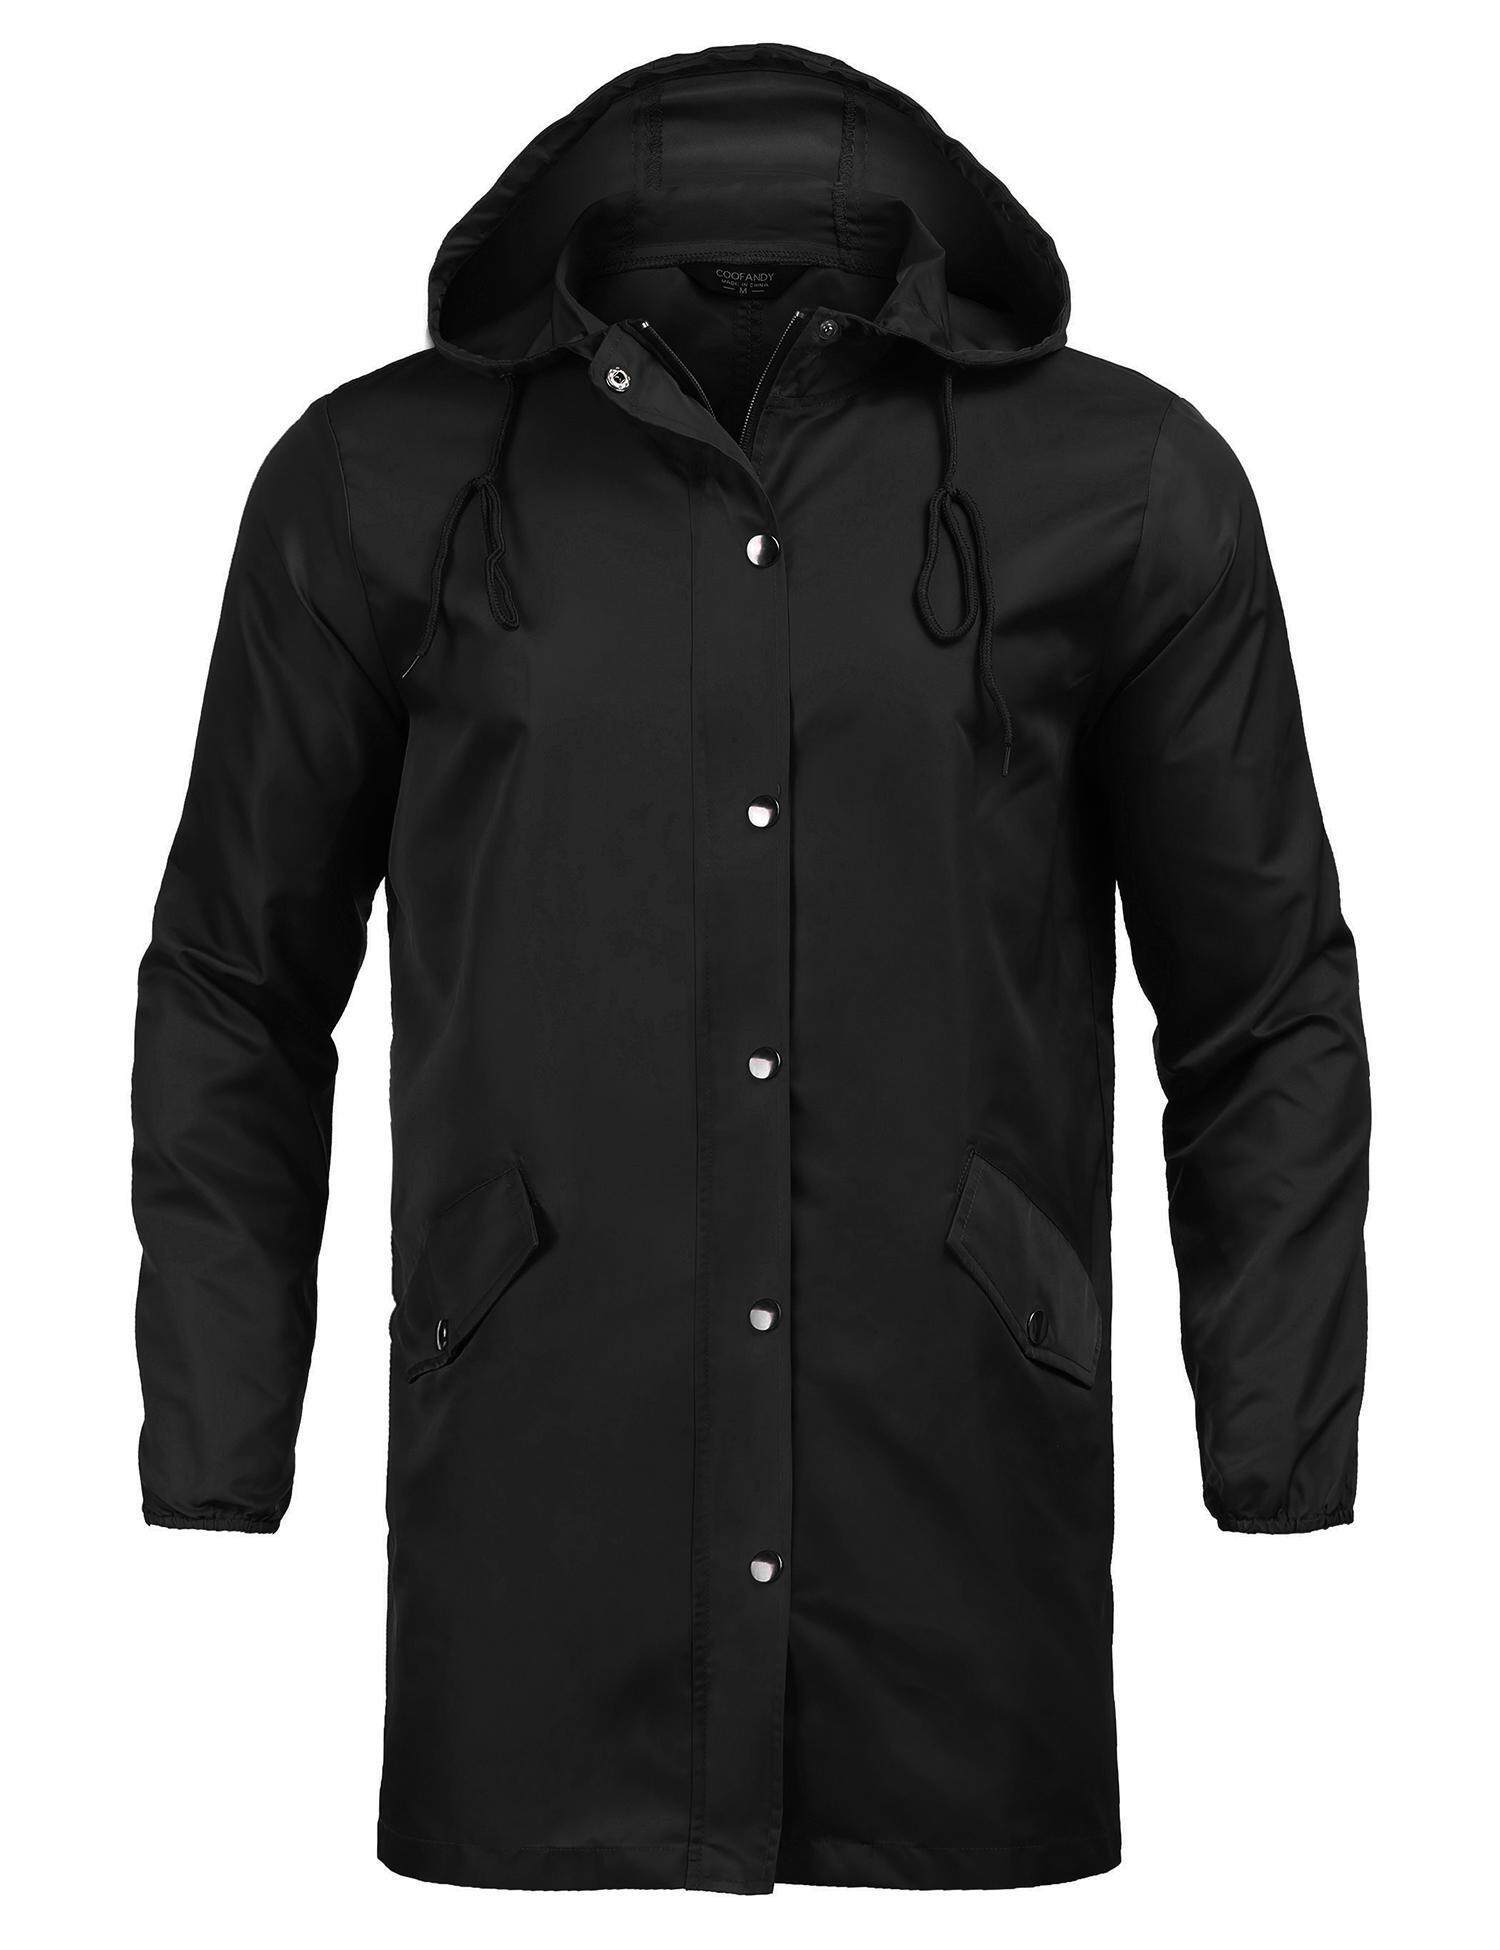 Popular Rain Coats For Men The Best Prices In Malaysia Jaket Parka Cewek Seller Supercart Unisex Long Waterproof Raincoat Adult Button Up Hooded Coat Women